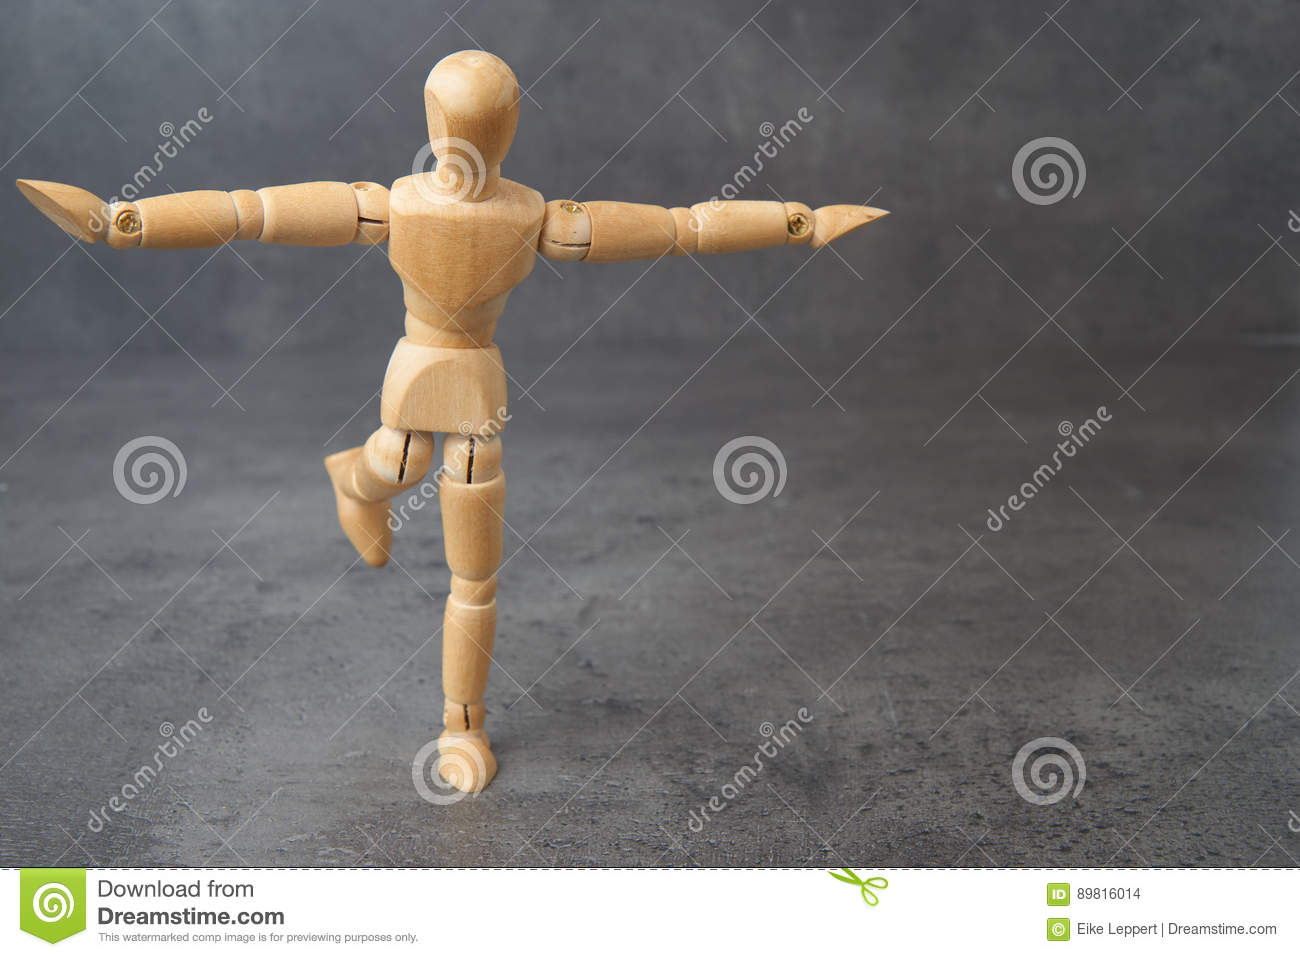 Balancing wooden mannequin, puppet, with copyspace